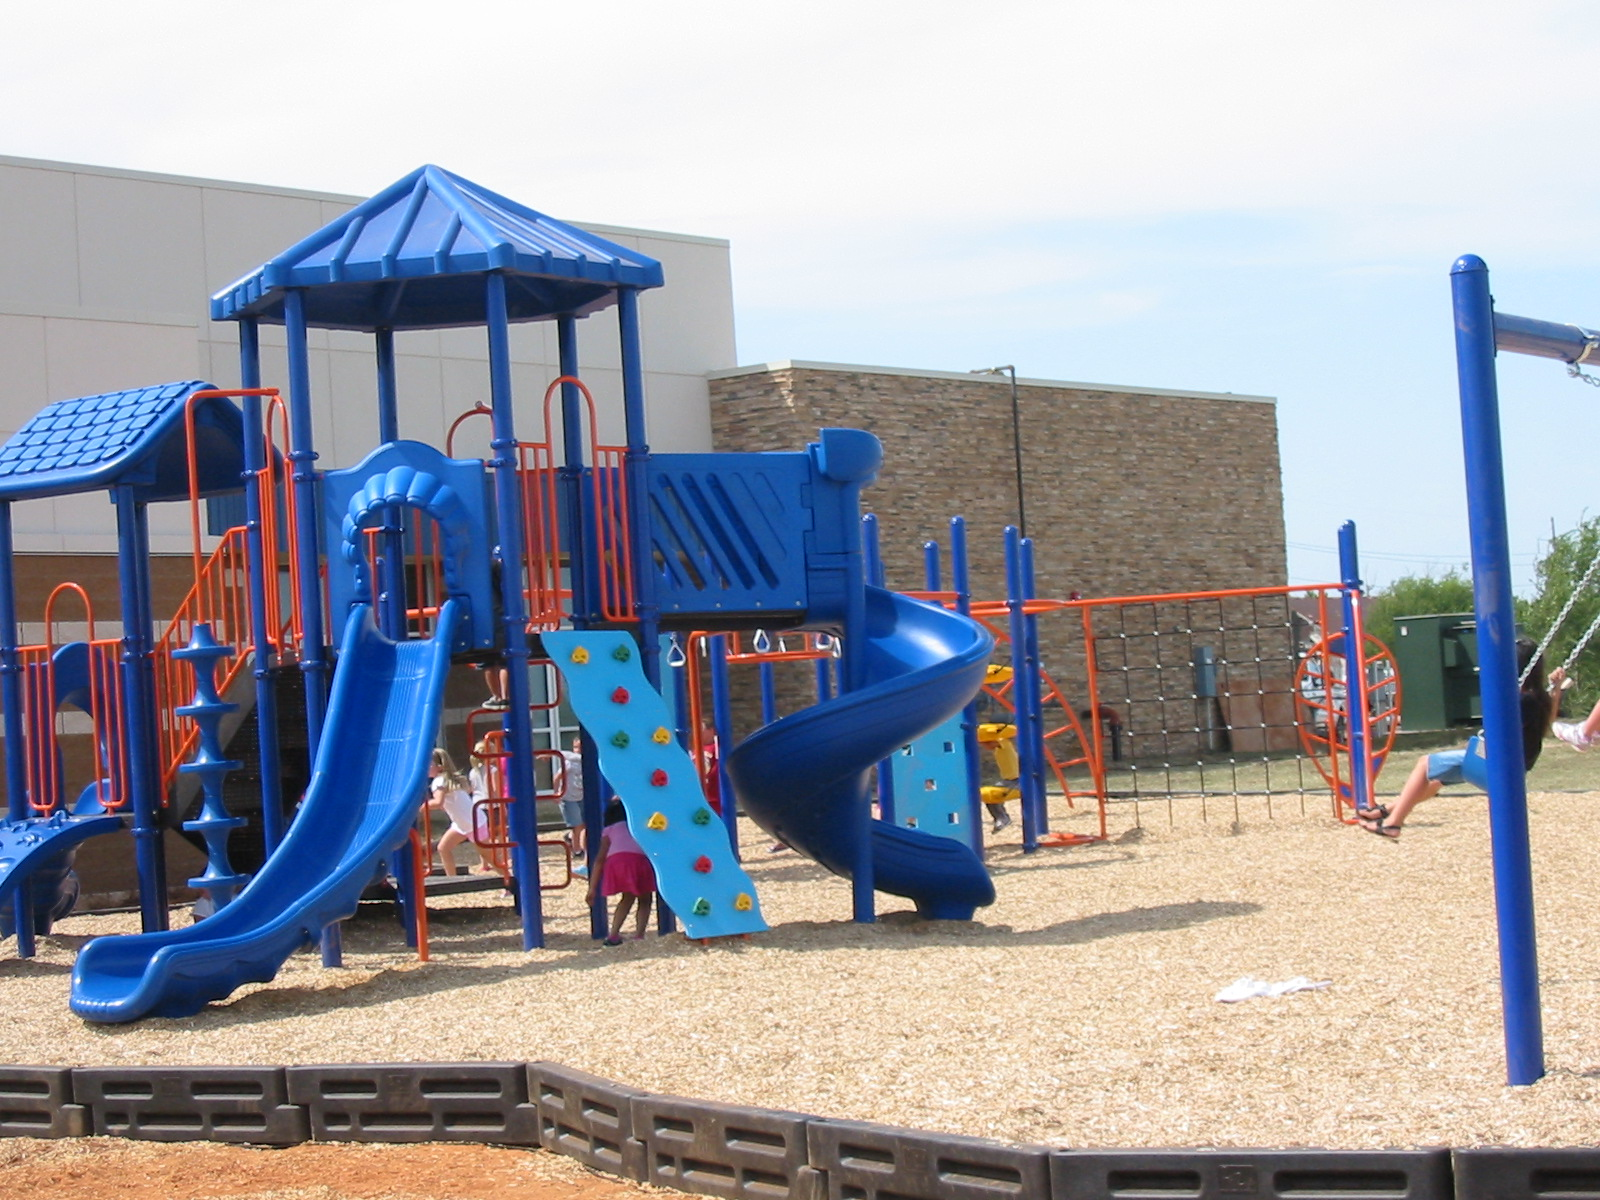 Noahs Park and Playgrounds, LLC image 4